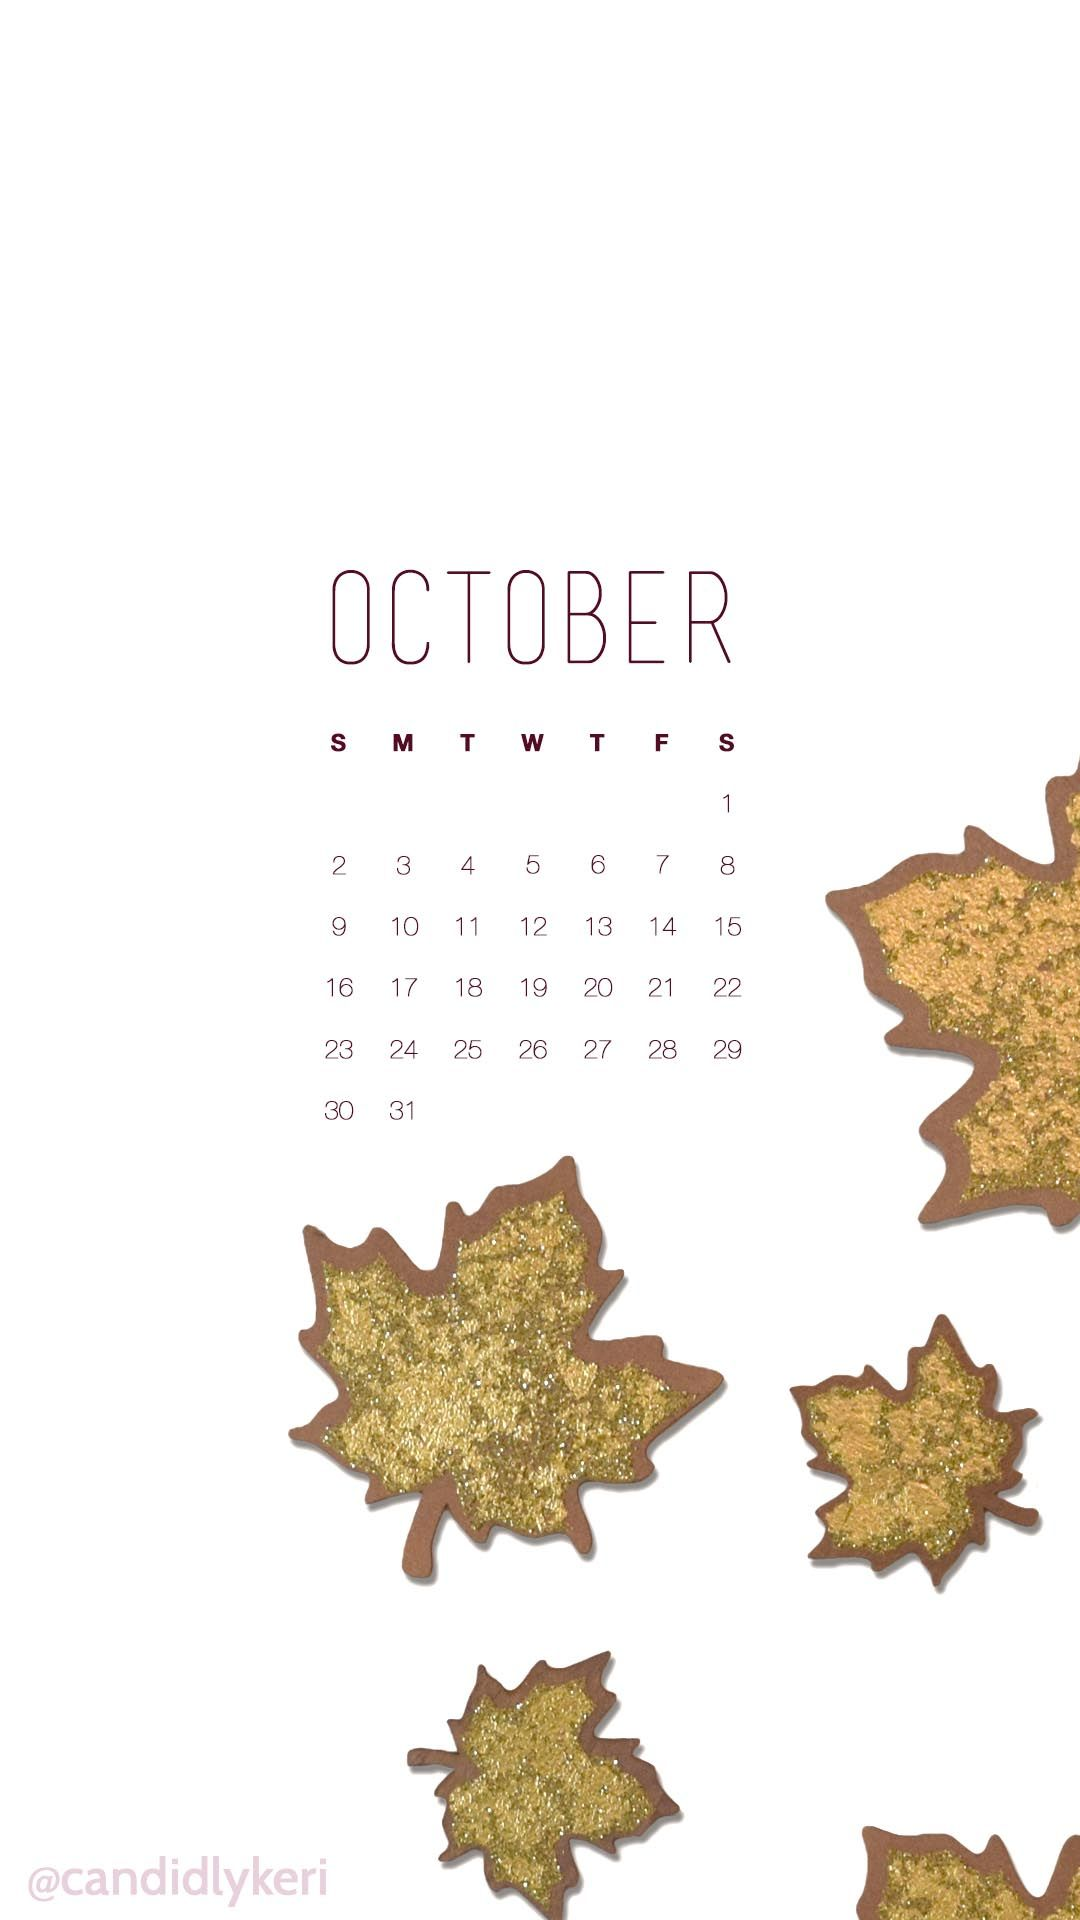 October Gold Leaf Calendar 2016 Wallpaper You Can Download For Free On The Blog For Any Device Mobile Desktop Iphone Android Avec Images Fond Ecran Calendrier